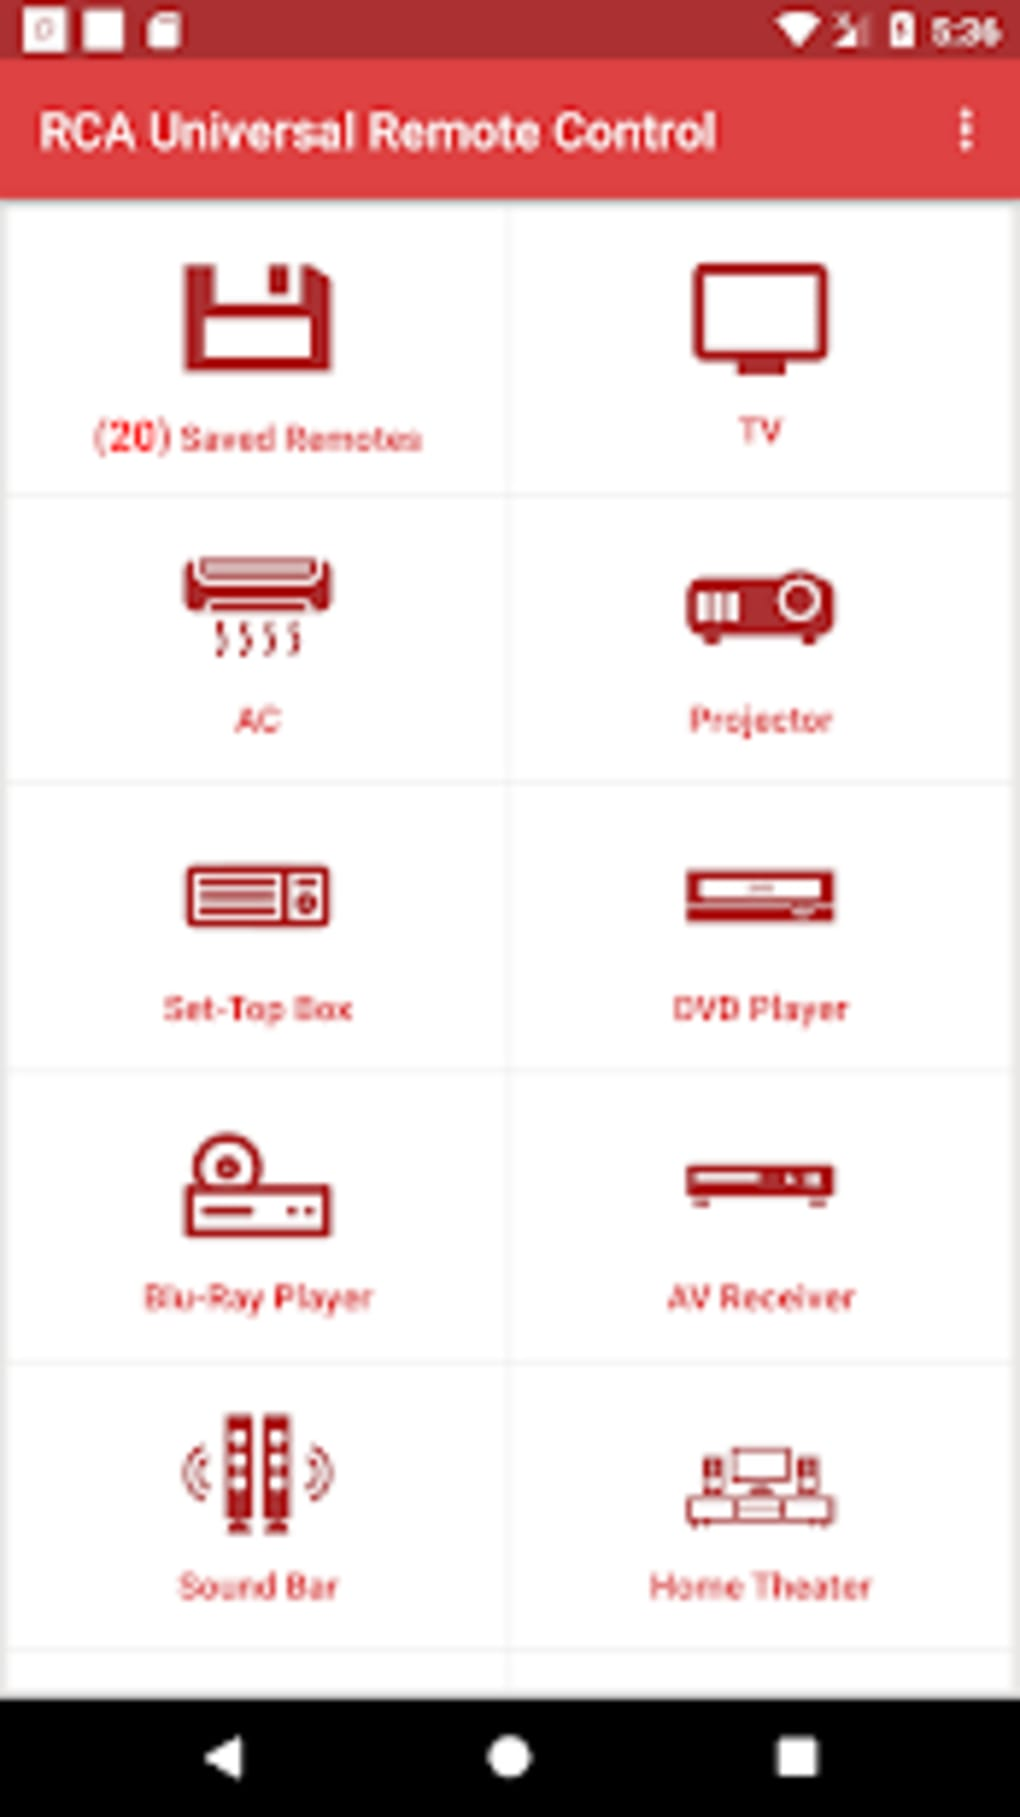 RCA Universal Remote Control for Android - Download